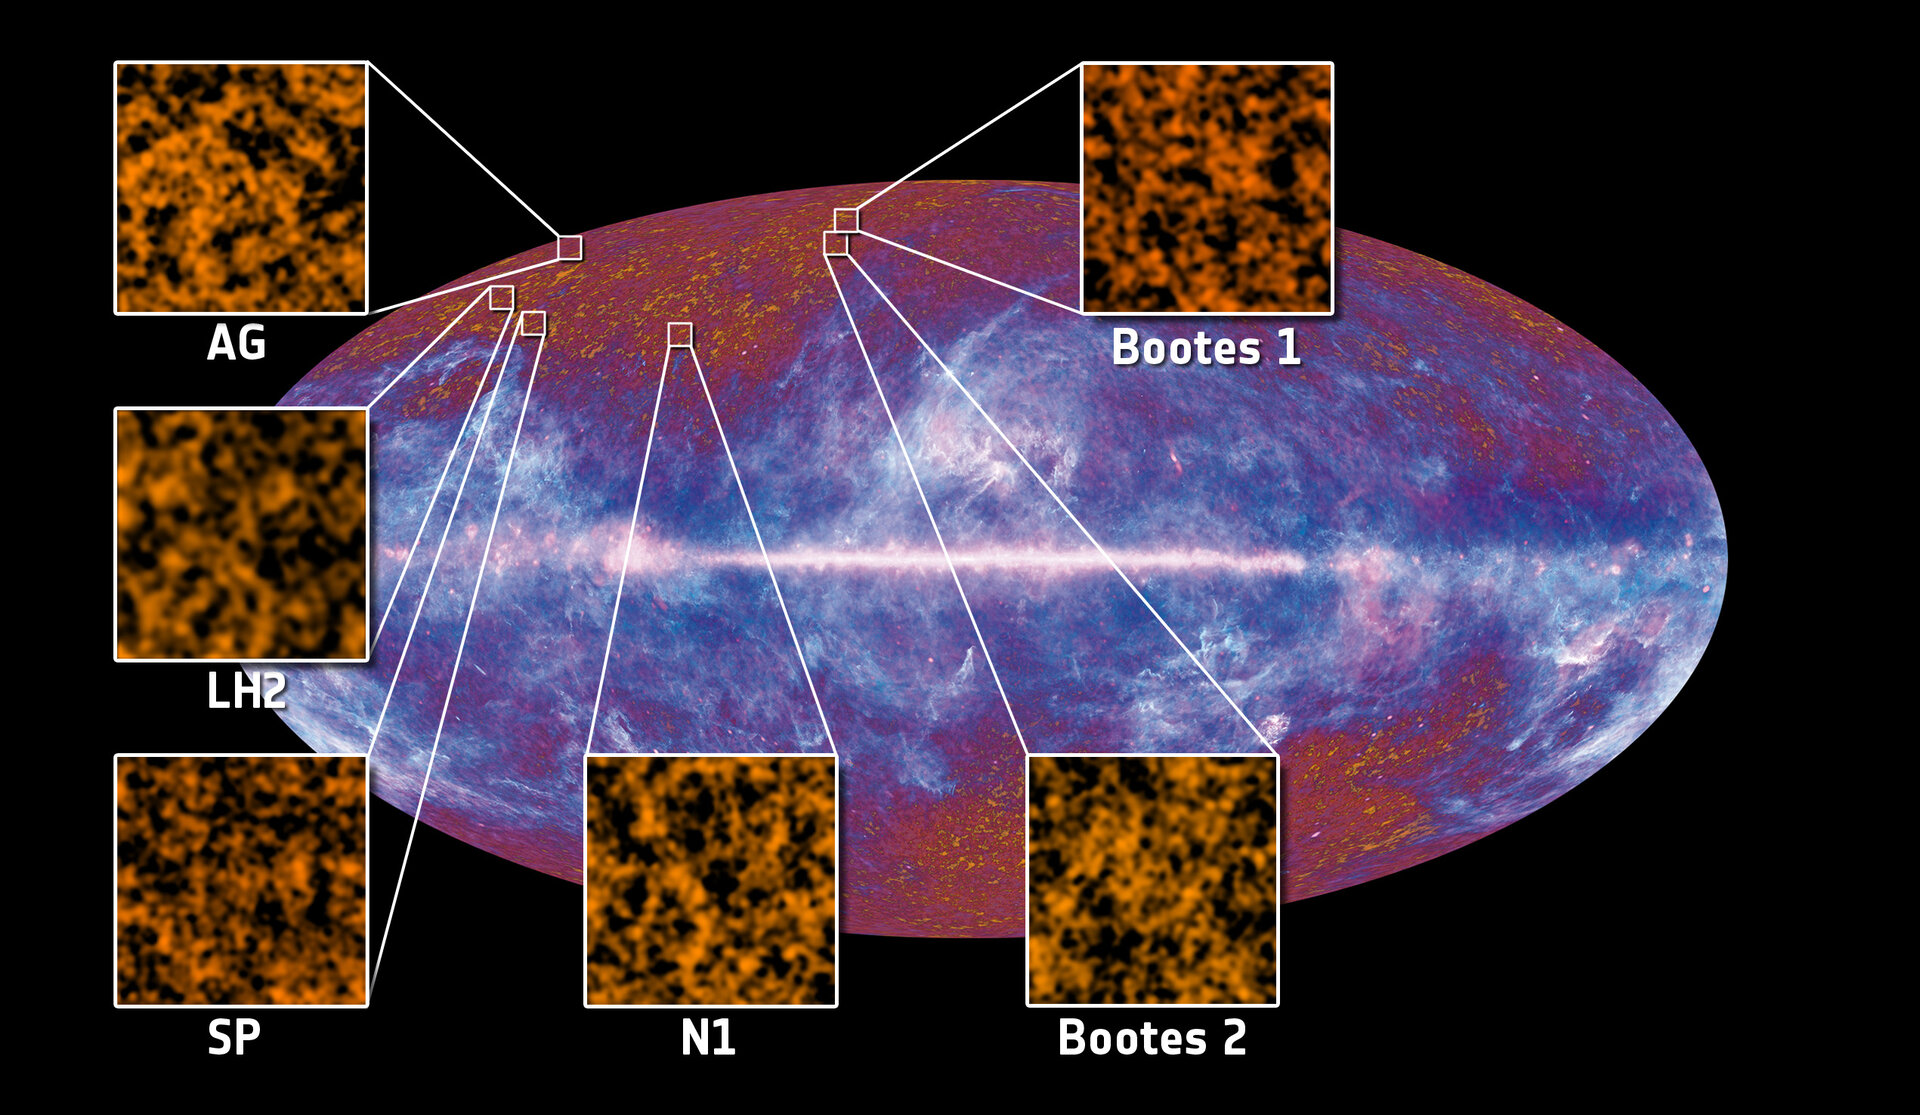 Planck investigates the cosmic infrared background